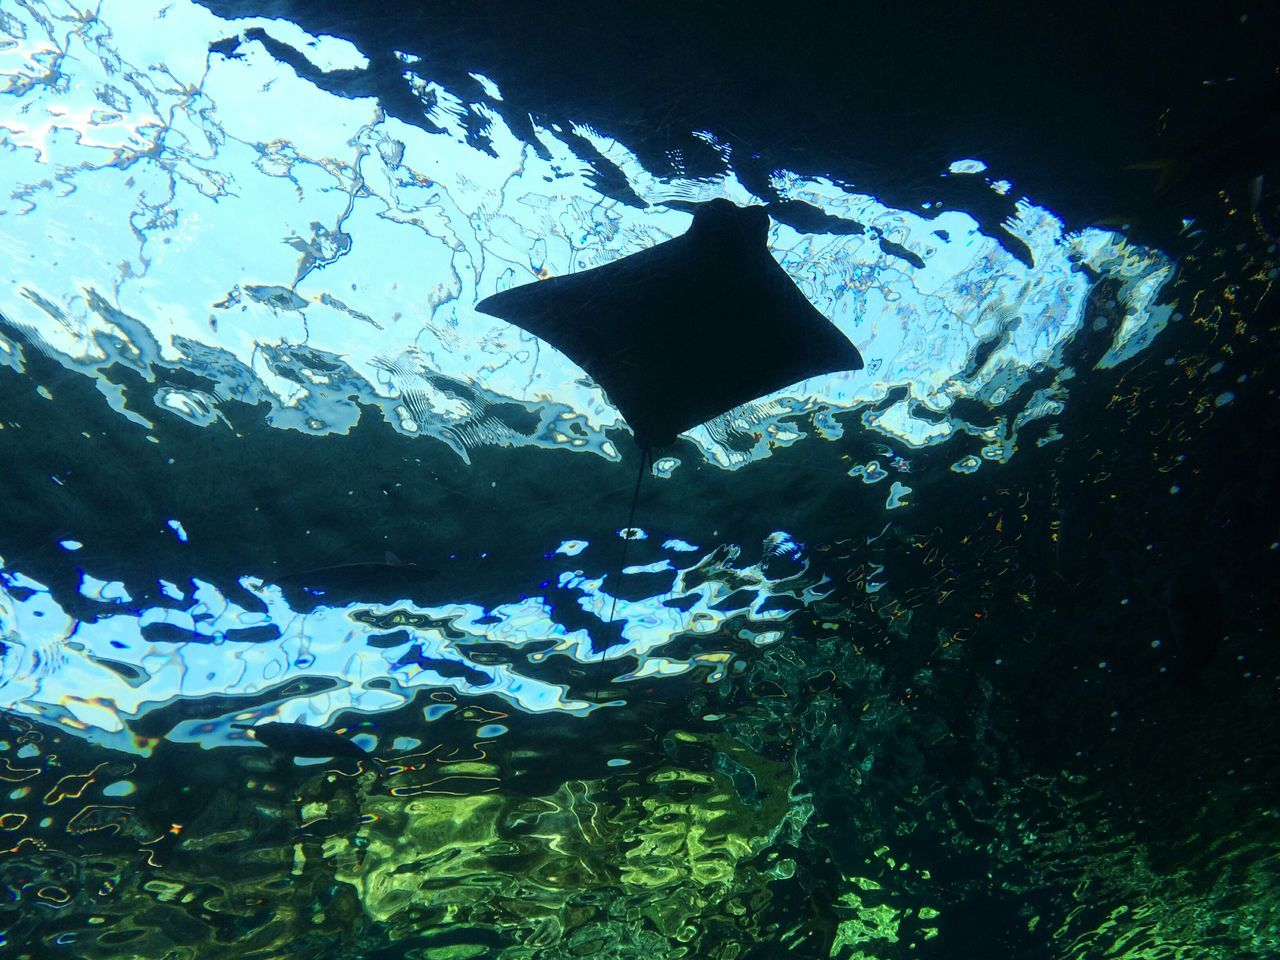 Taking Photos Hello World Enjoying Life Stingray Glowing From My Point Of View EyeEm Nature Lover Exceptional Photographs Colour Of Life Beauty In Nature Sea Life Aquarium Underwater Shootermag Ocean Oceanlife Water Backgrounds Pivotal Ideas Underwater Life Underwater Photography Underwater World